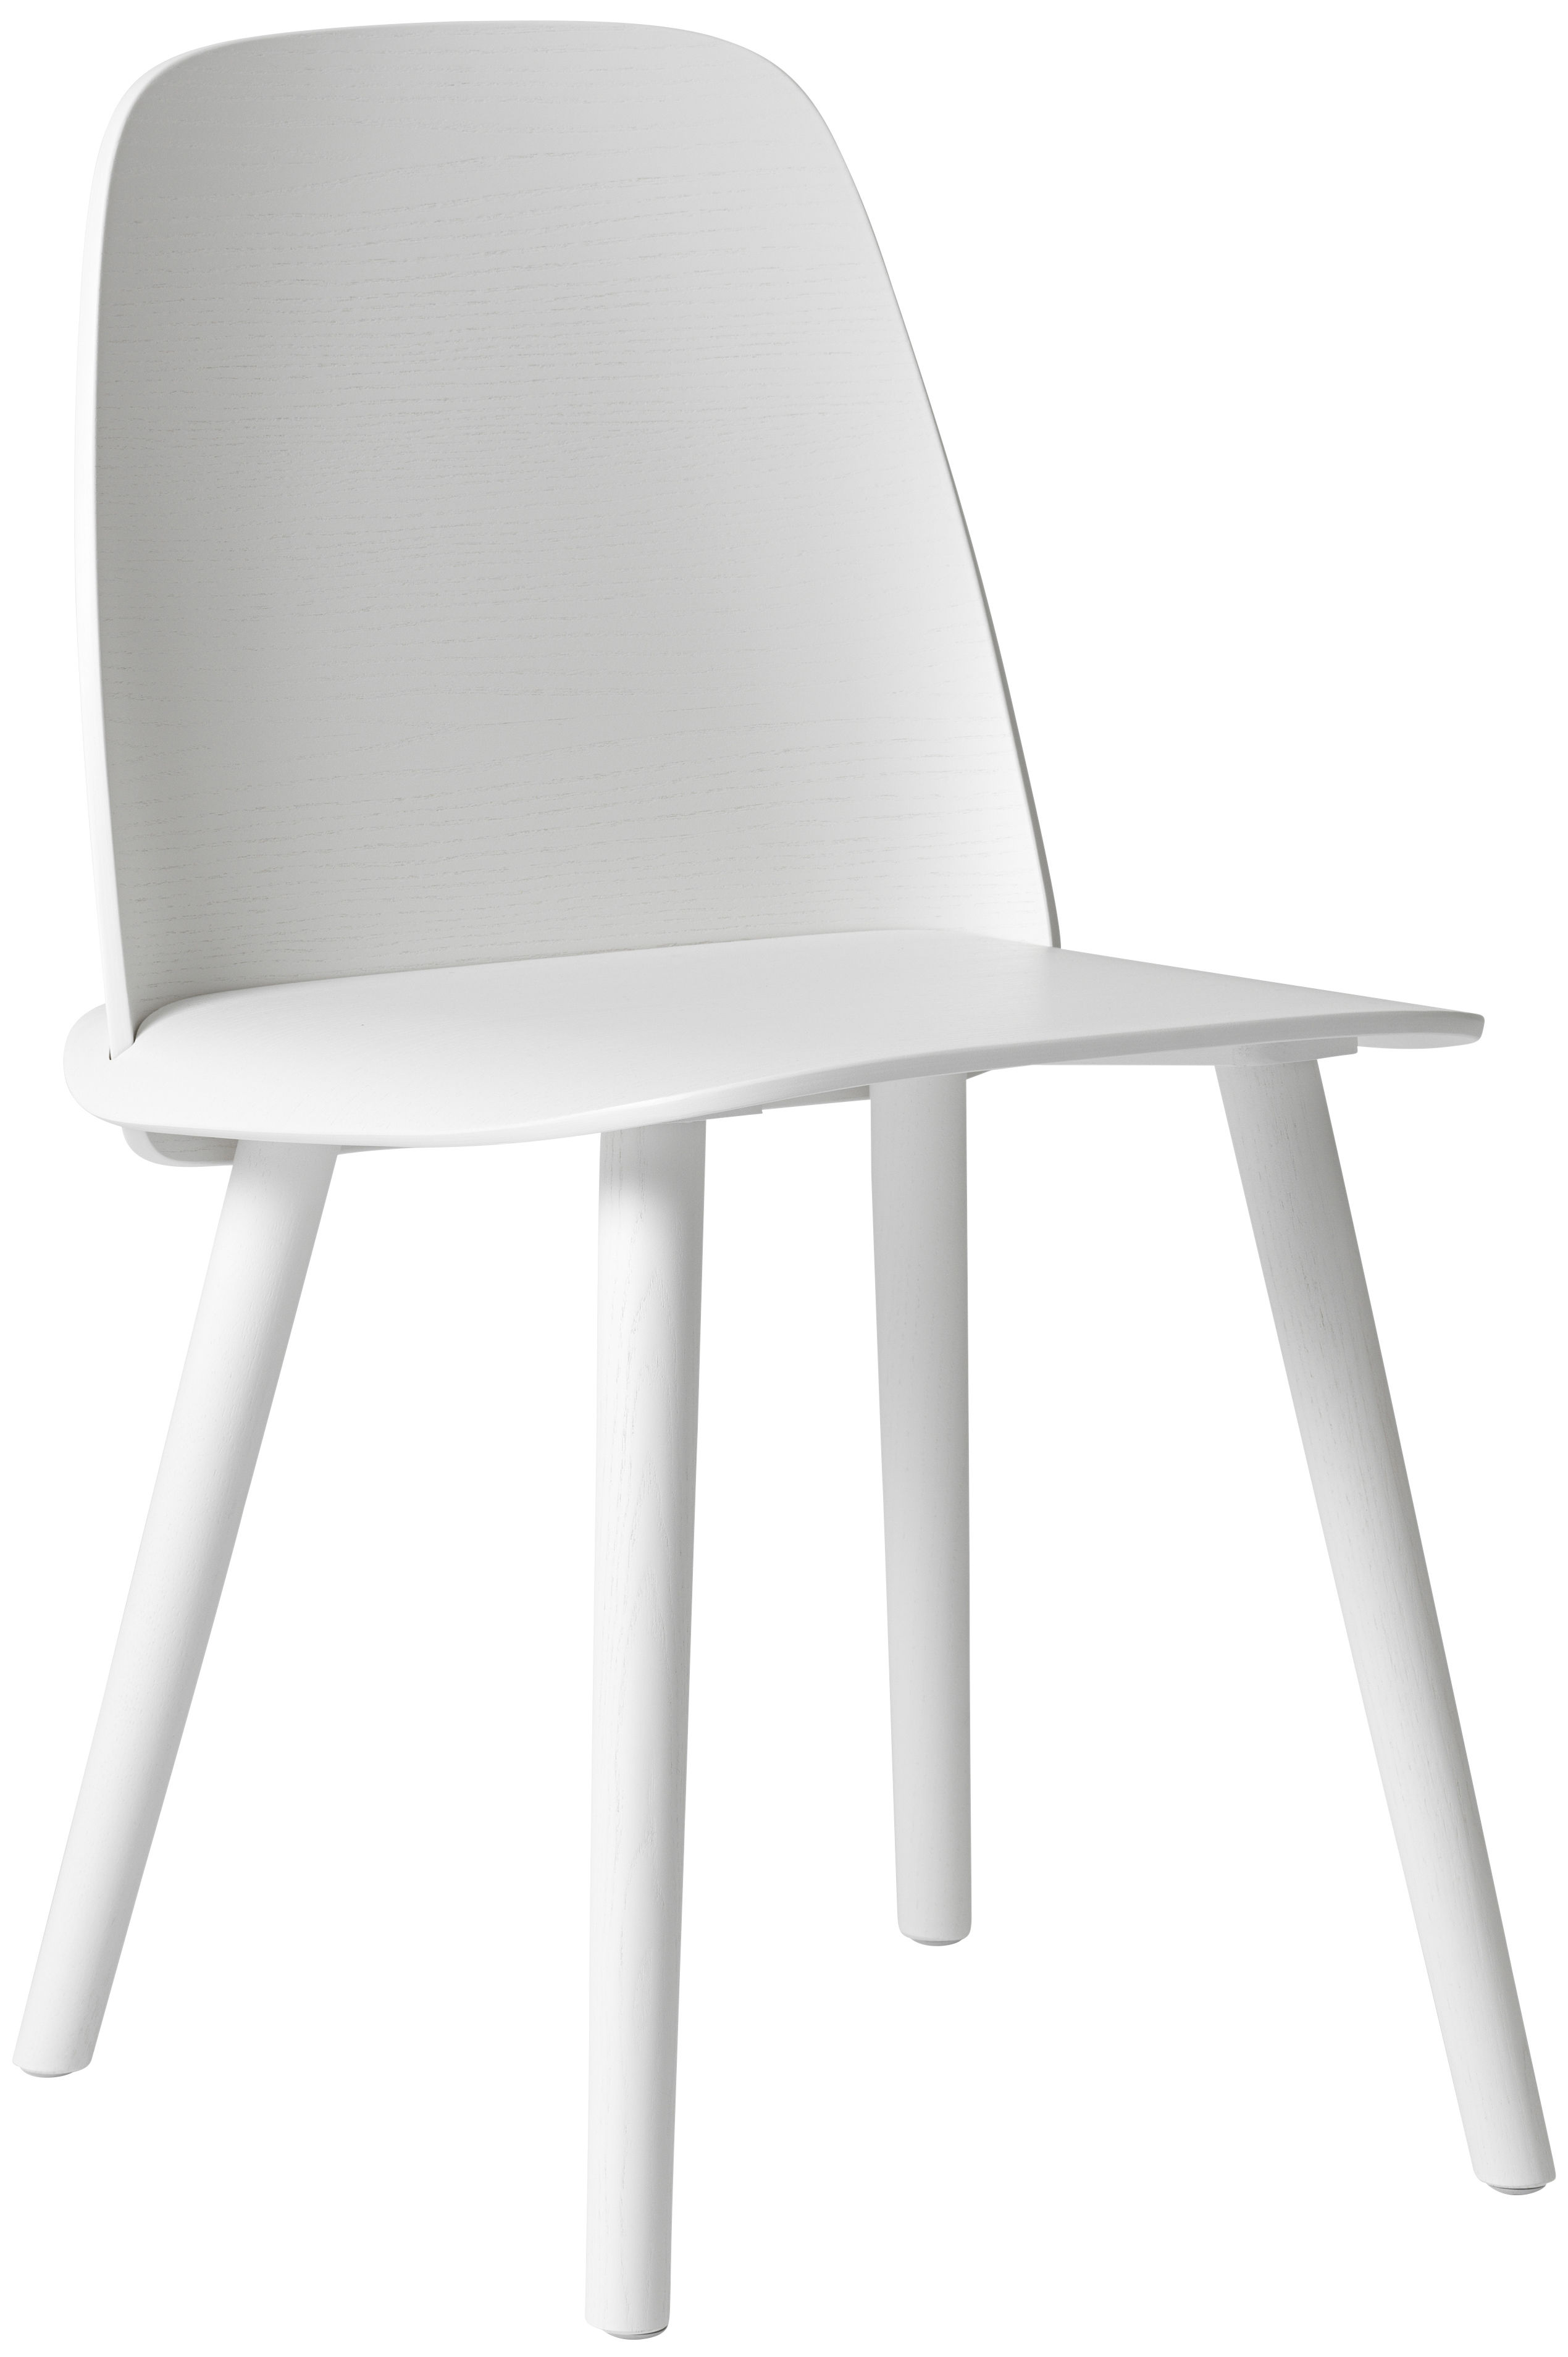 Furniture - Chairs - Nerd Chair - Wood by Muuto - White - Lacquered ash